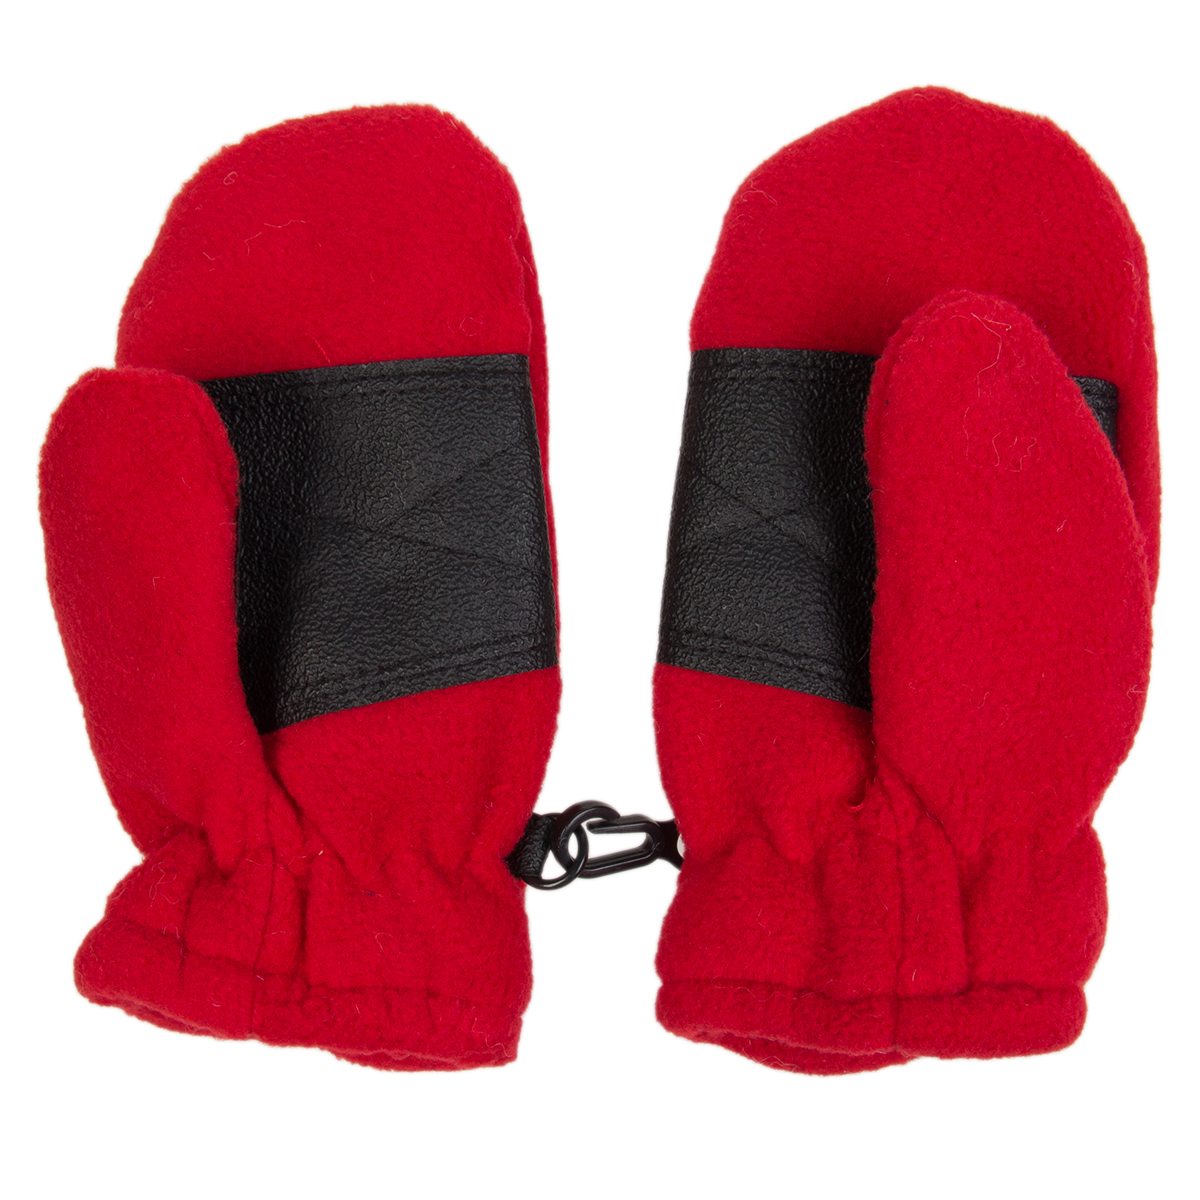 Shop the best selection of infant and toddler gloves and mittens at it24-ieop.gq, where you'll find premium outdoor gear and clothing and experts to guide you through selection.